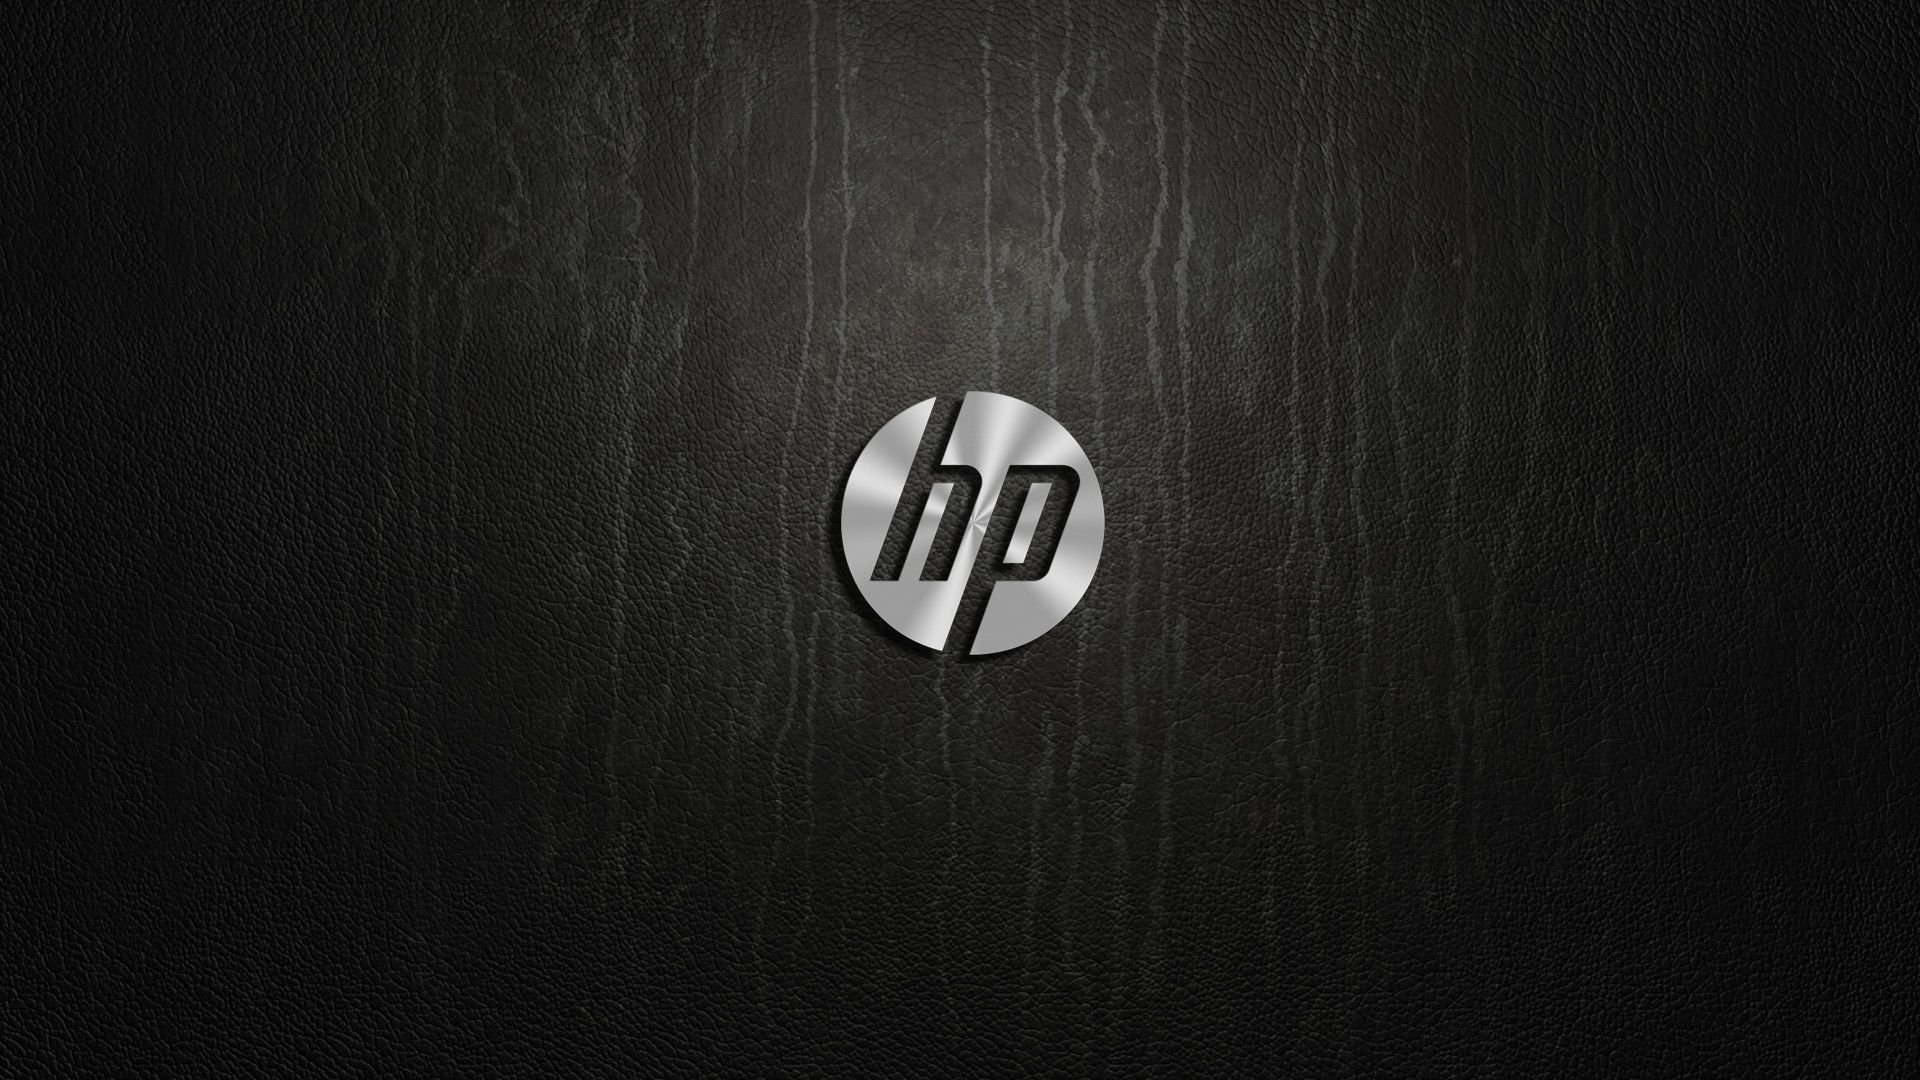 Hp 4k Wallpapers Top Free Backgrounds Wallpaperaccess